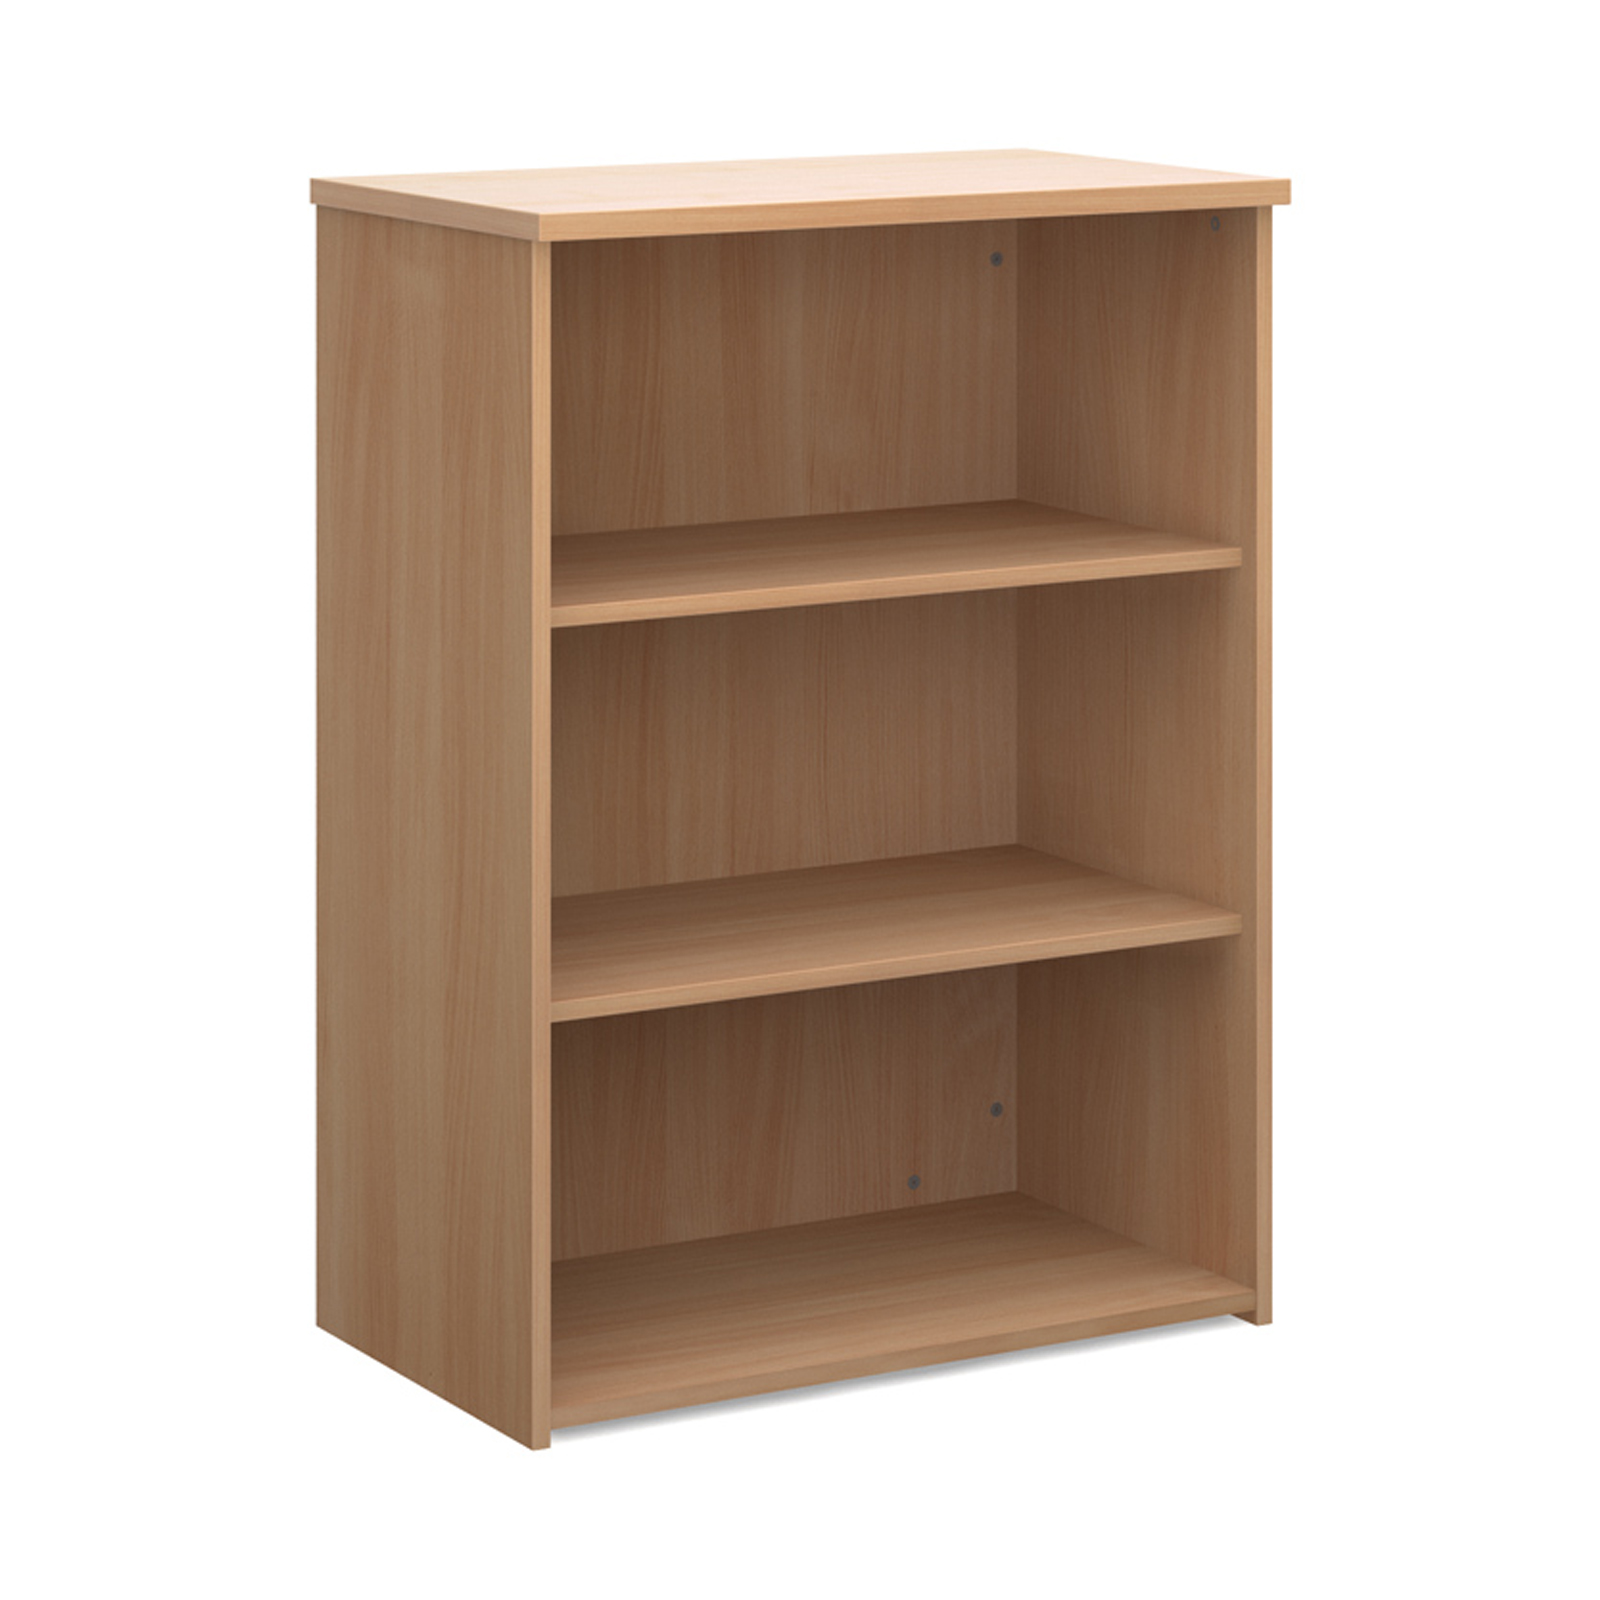 Up To 1200mm High Universal bookcase 1090mm high with 2 shelves - beech